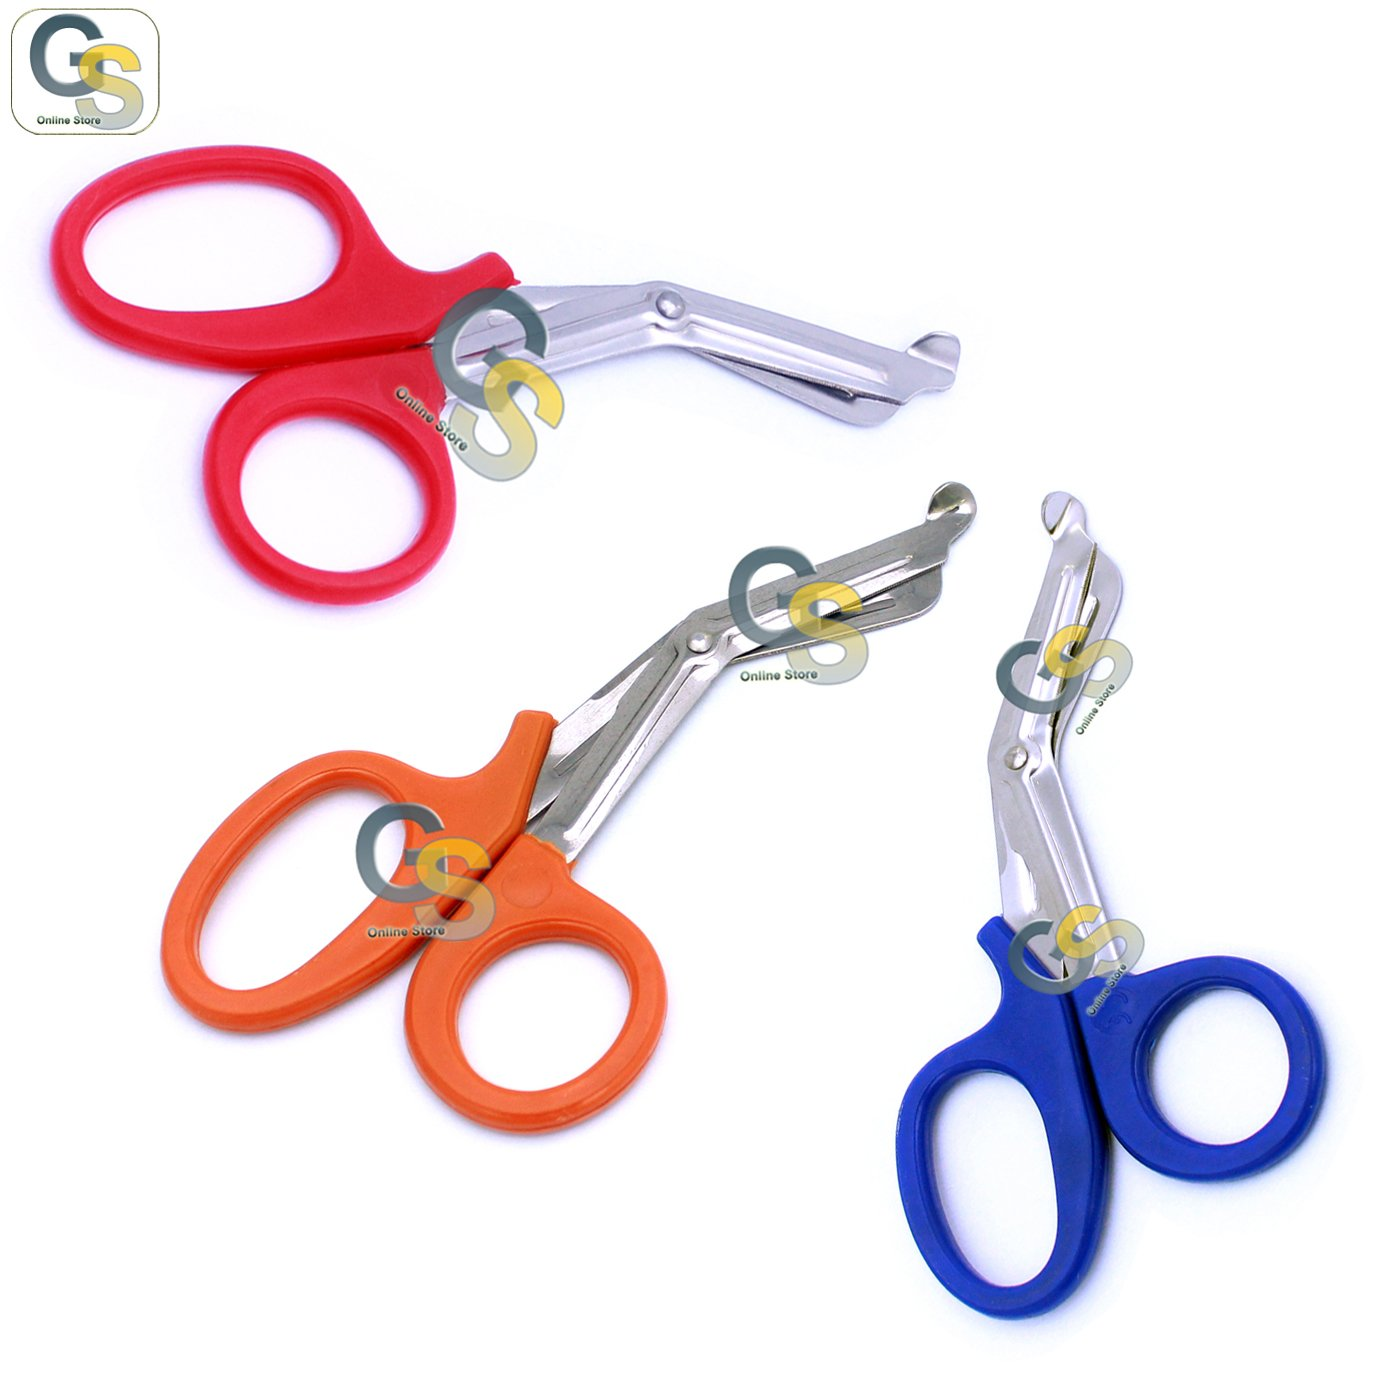 G.S 3 PCS (RED & NEON ORANGE & BLUE) PARAMEDIC UTILITY BANDAGE TRAUMA EMT EMS SHEARS SCISSORS 7.25 INCH STAINLESS STEEL